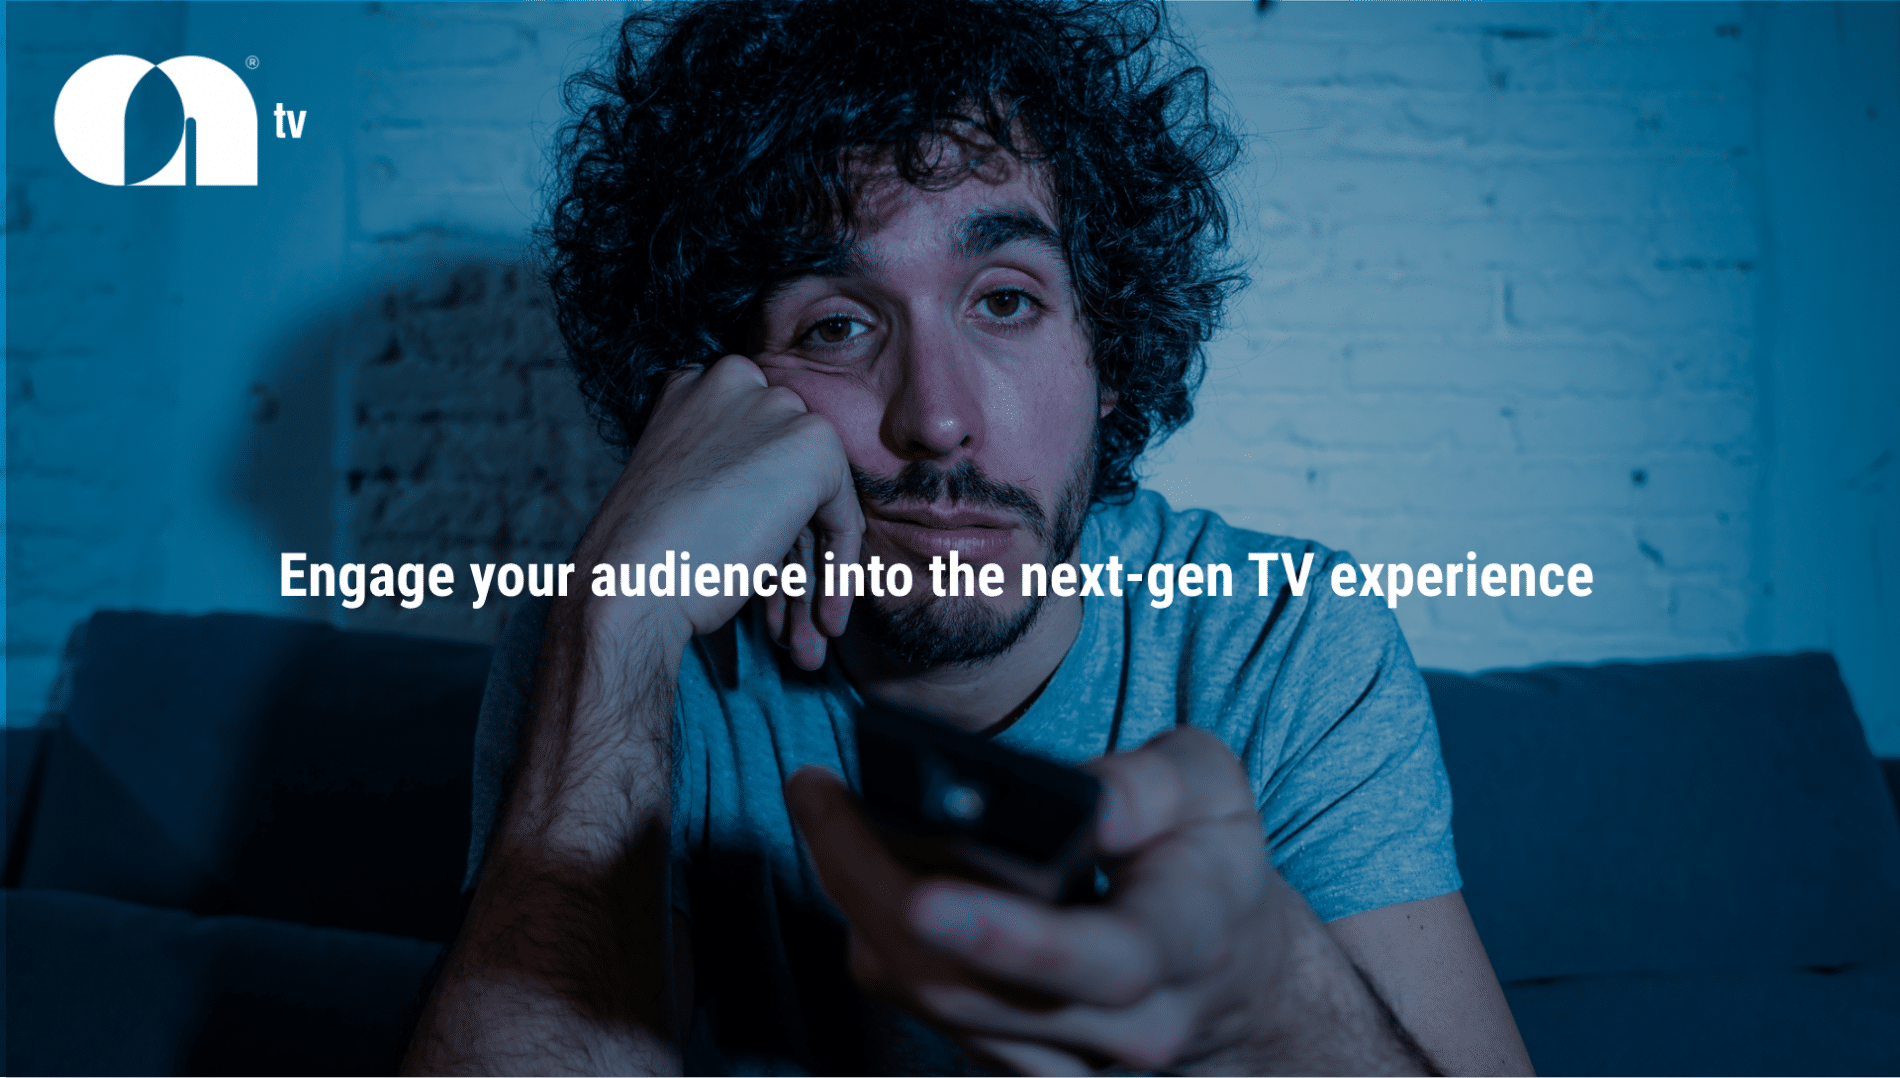 ONTV helps avoid subscription fatigue and keeps subscribers engaged